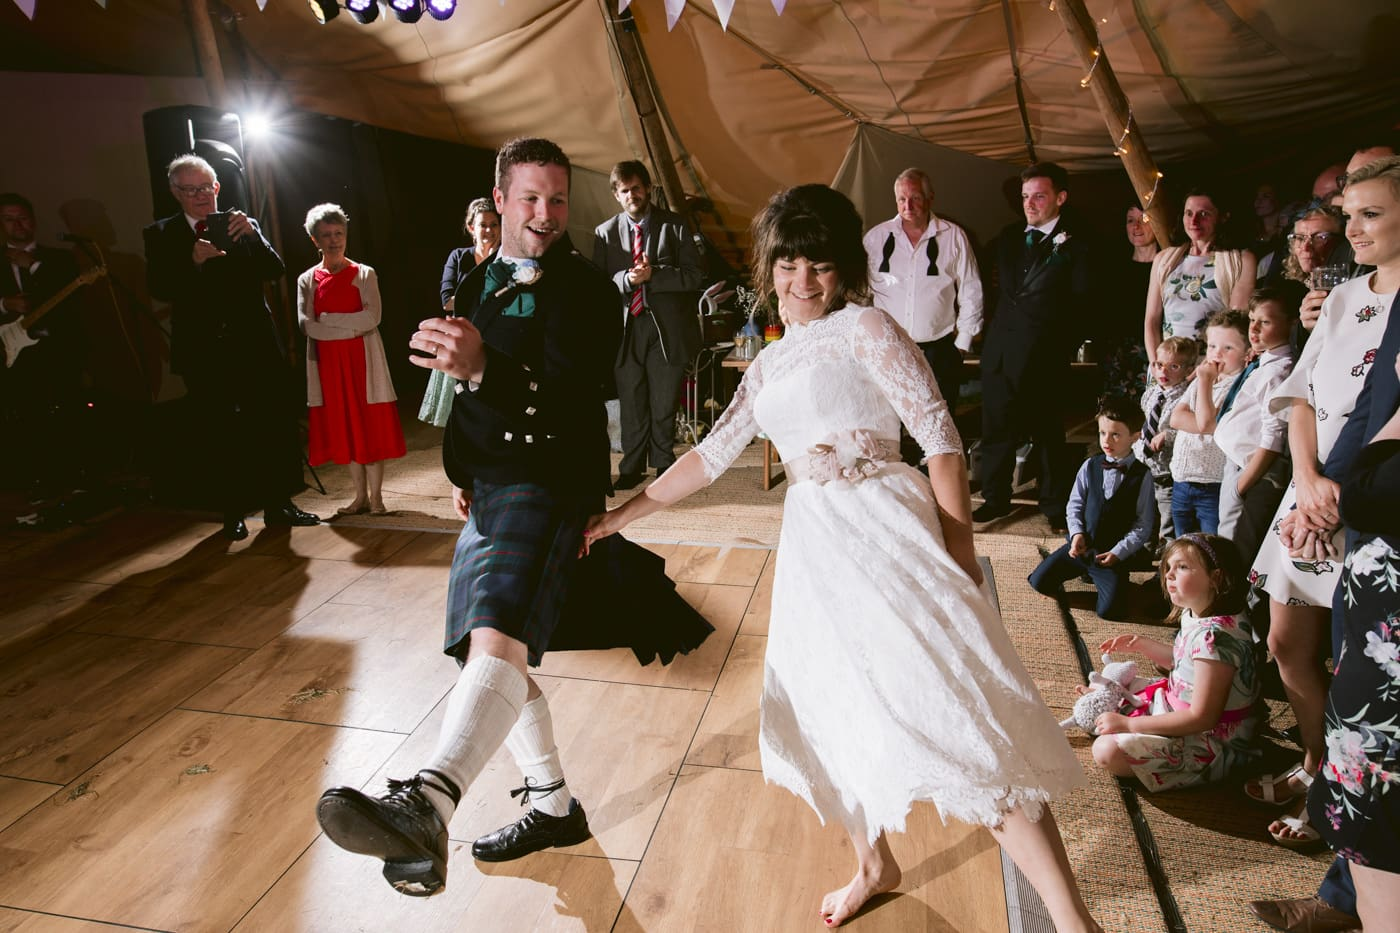 Bride and Groom Synchronised Dancing in Tipi Tent The Lake Destrict